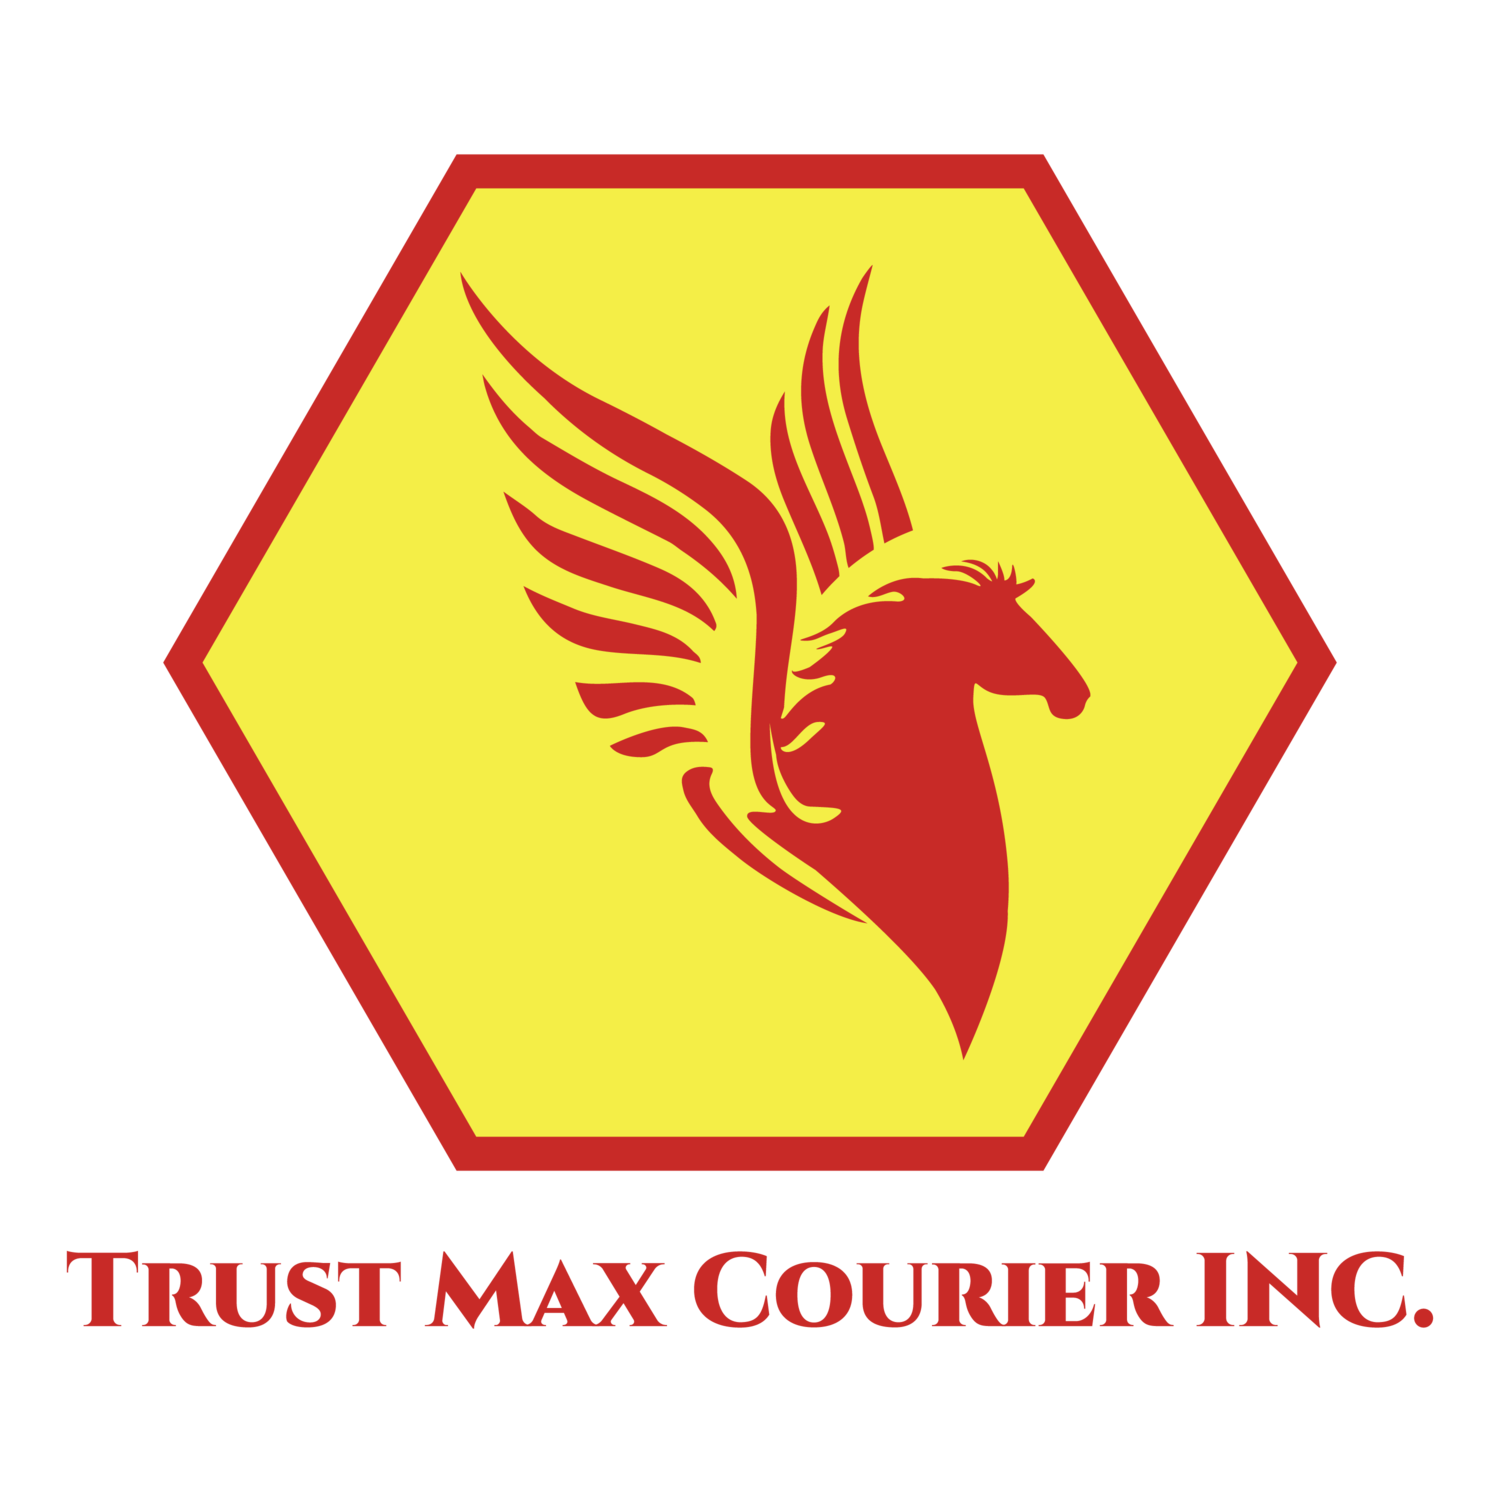 Trust Max Courier